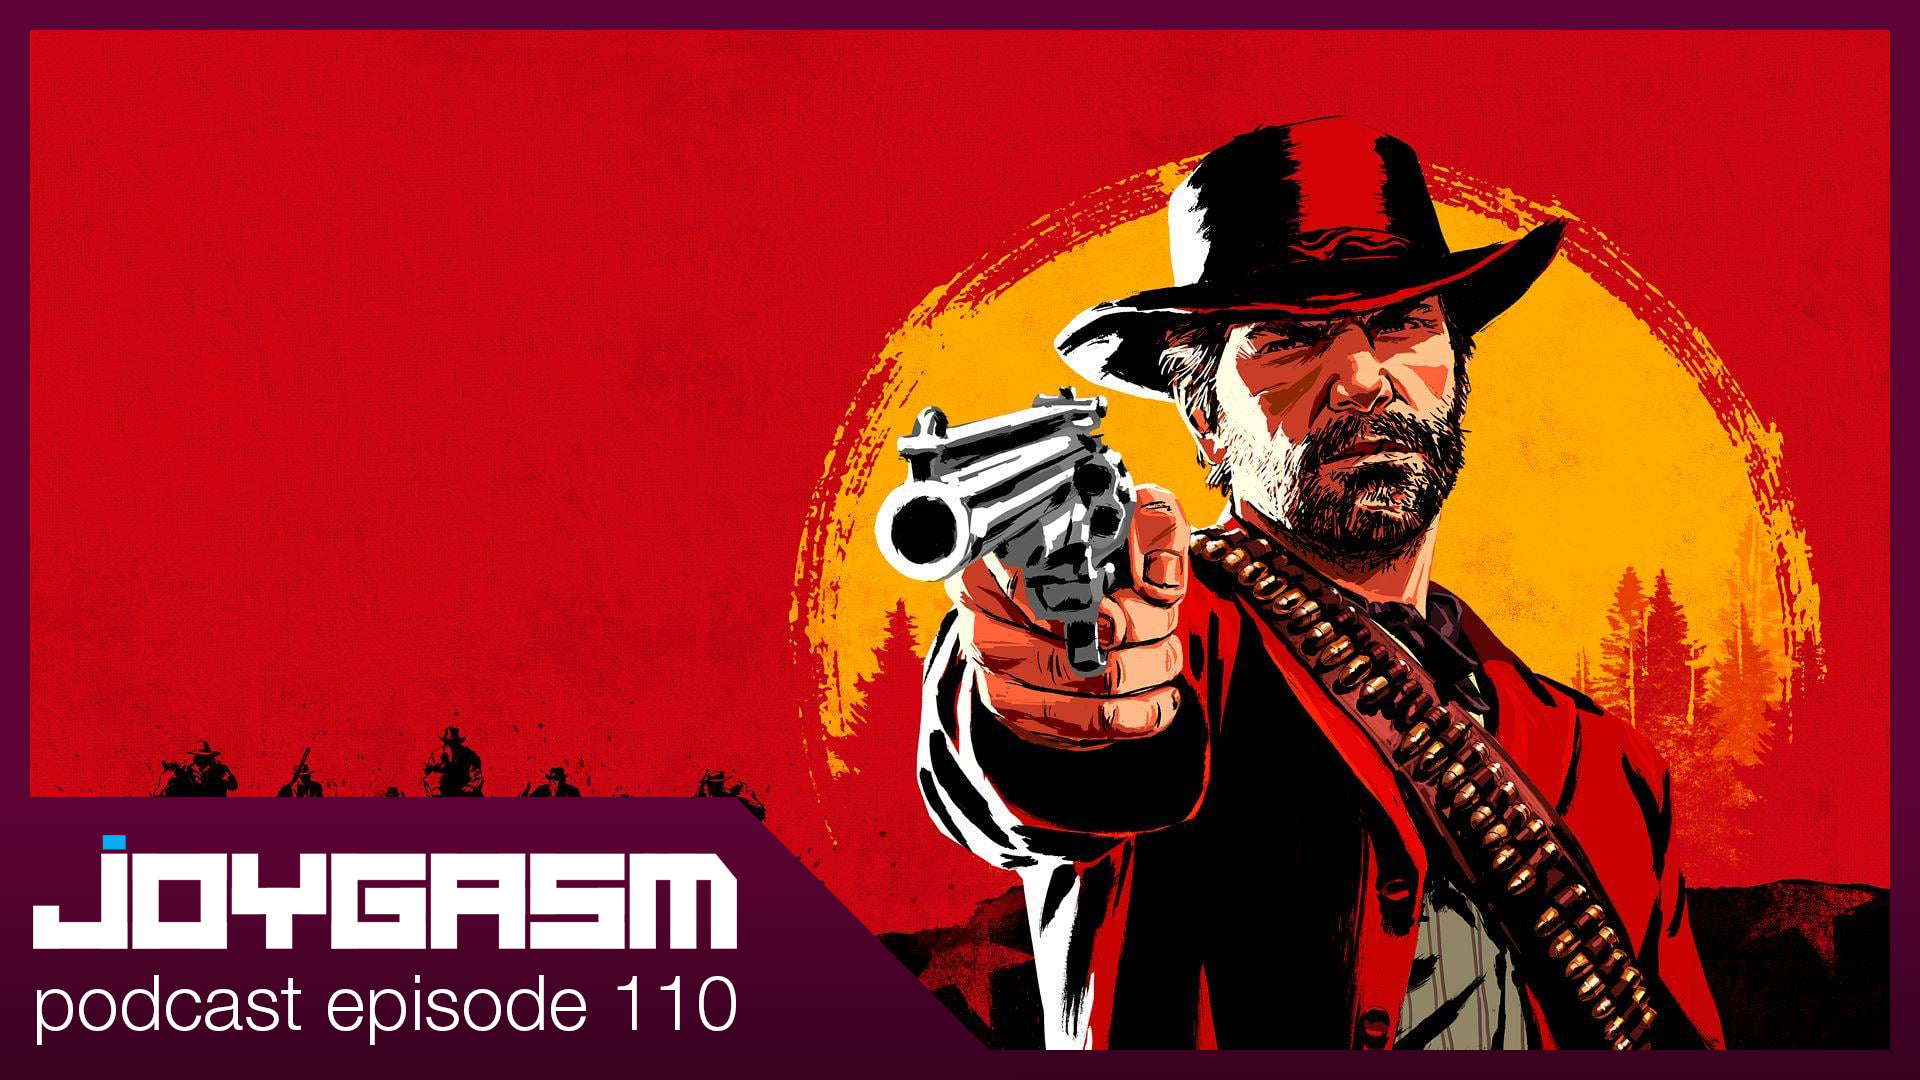 Ep. 110: Red Dead Redemption 2 Spoilercast Review